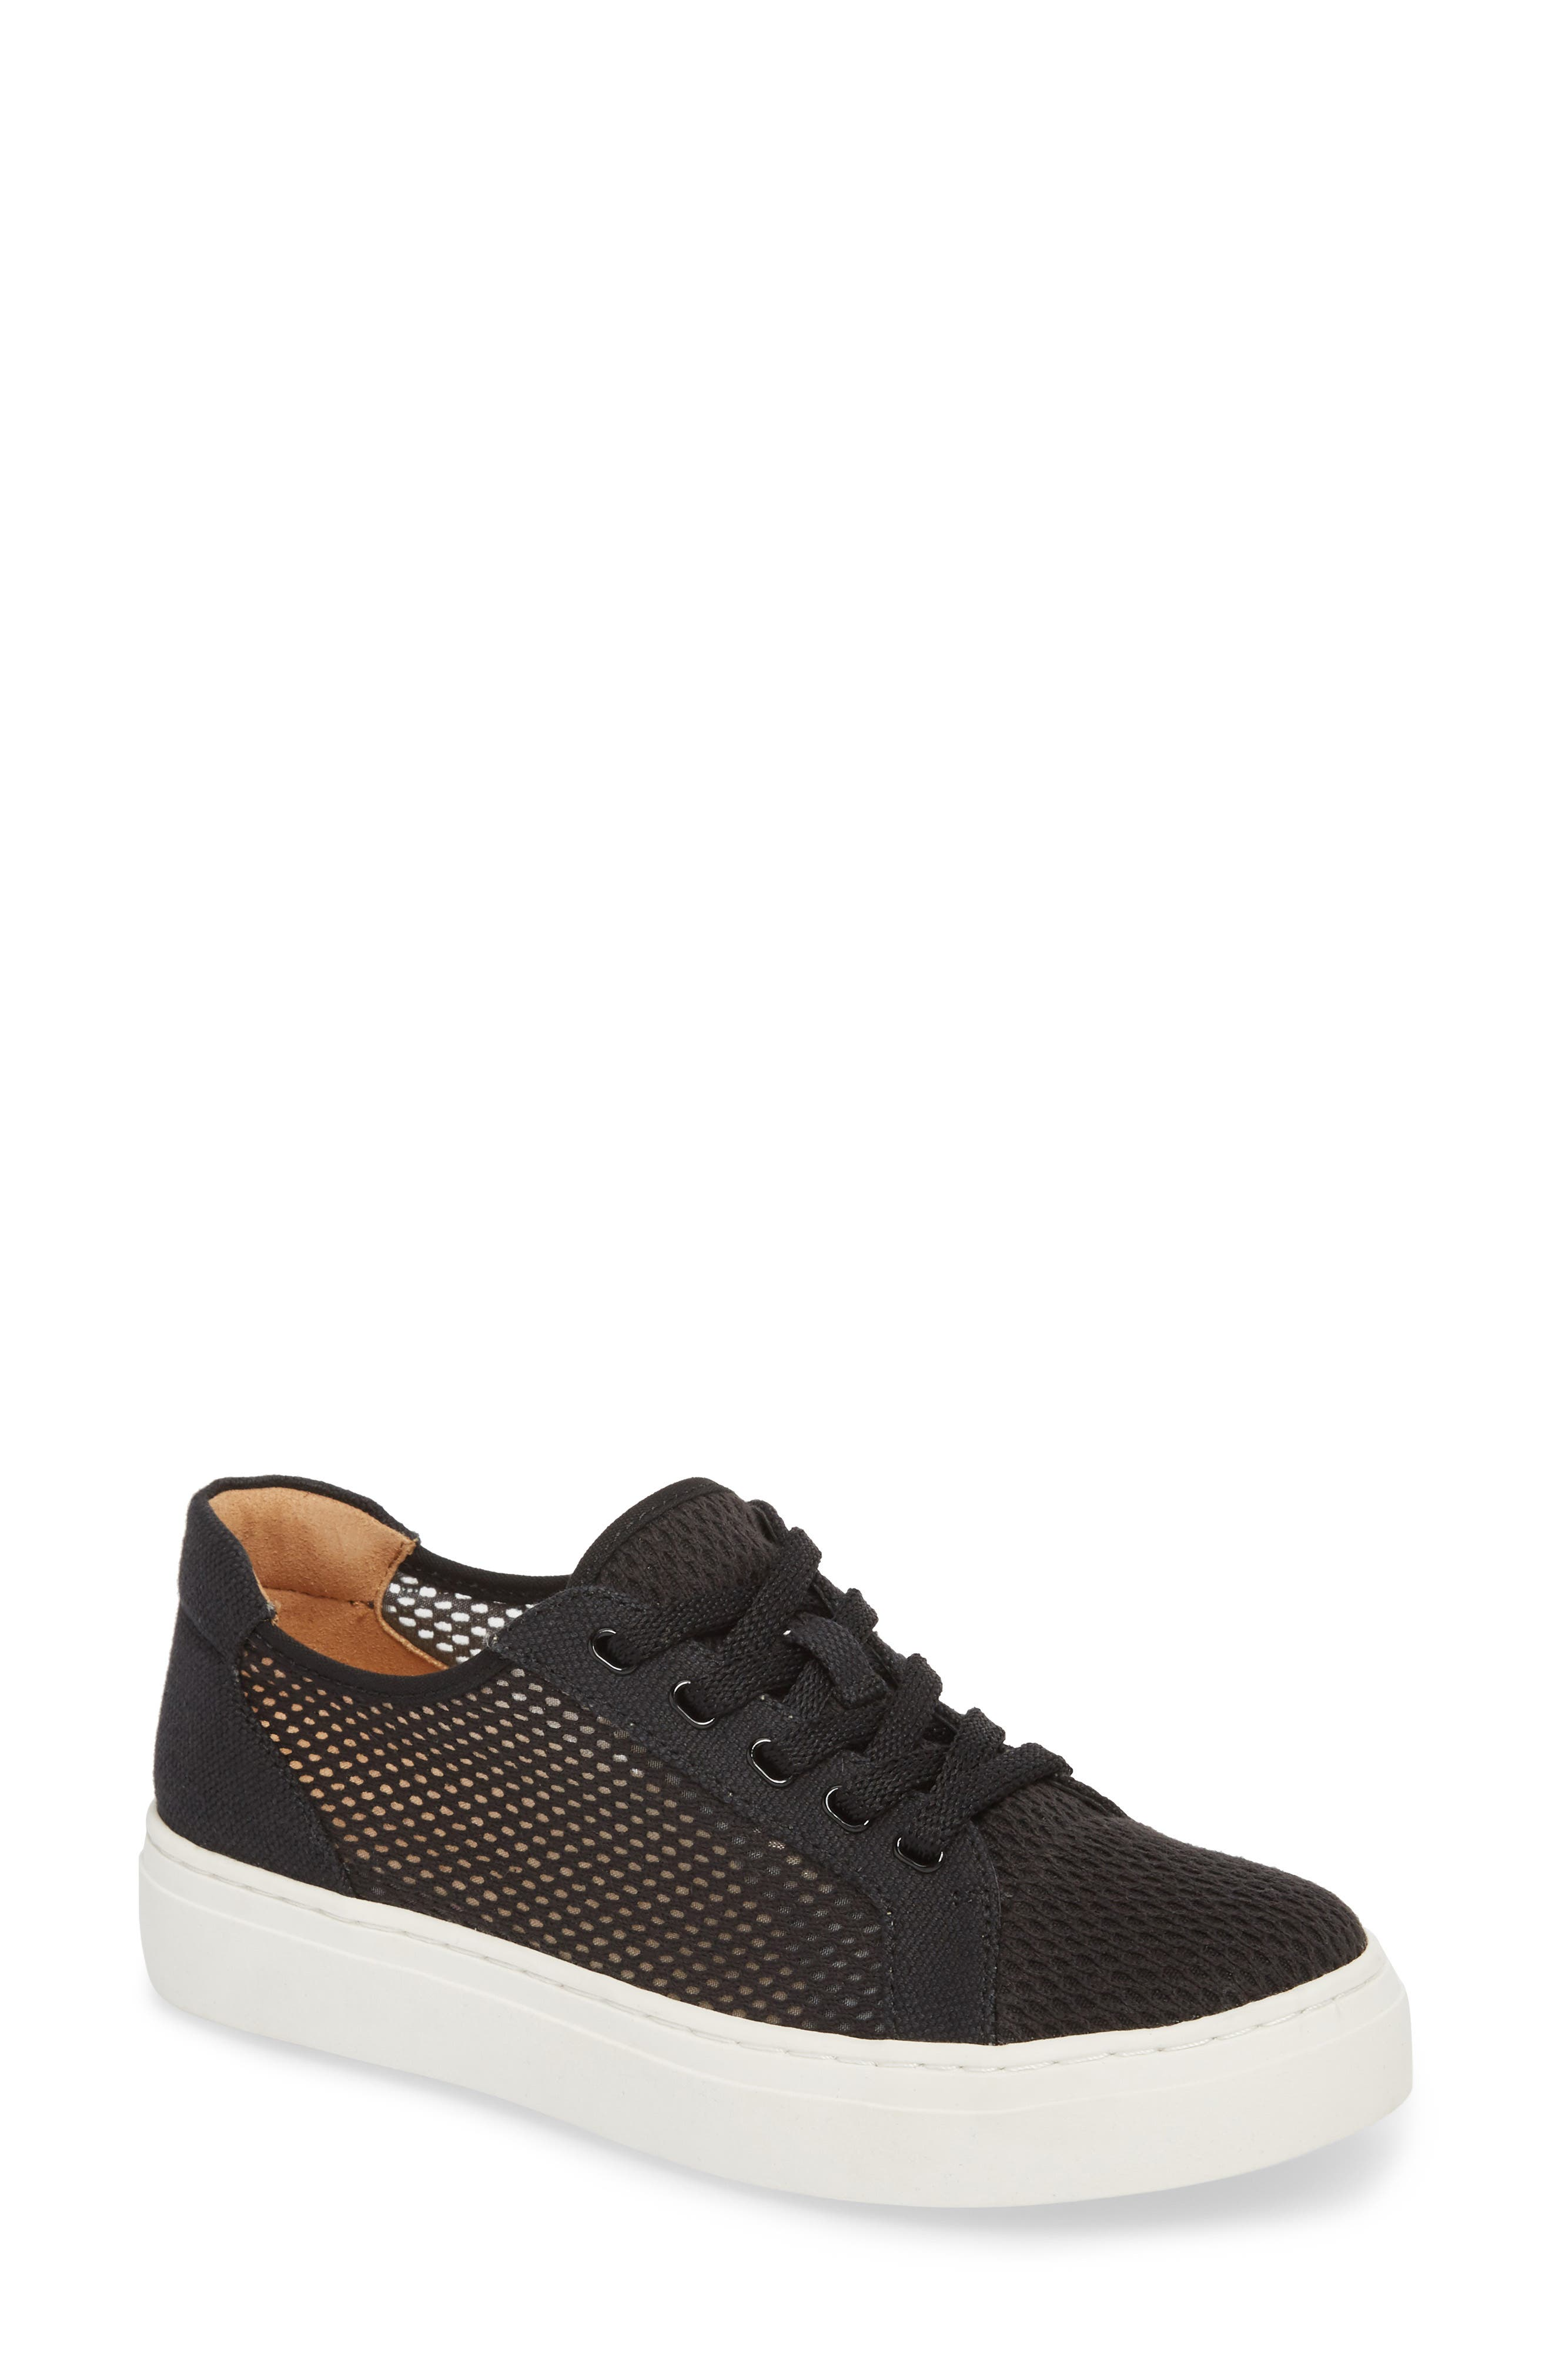 Naturalizer Cairo Sneaker W - Black